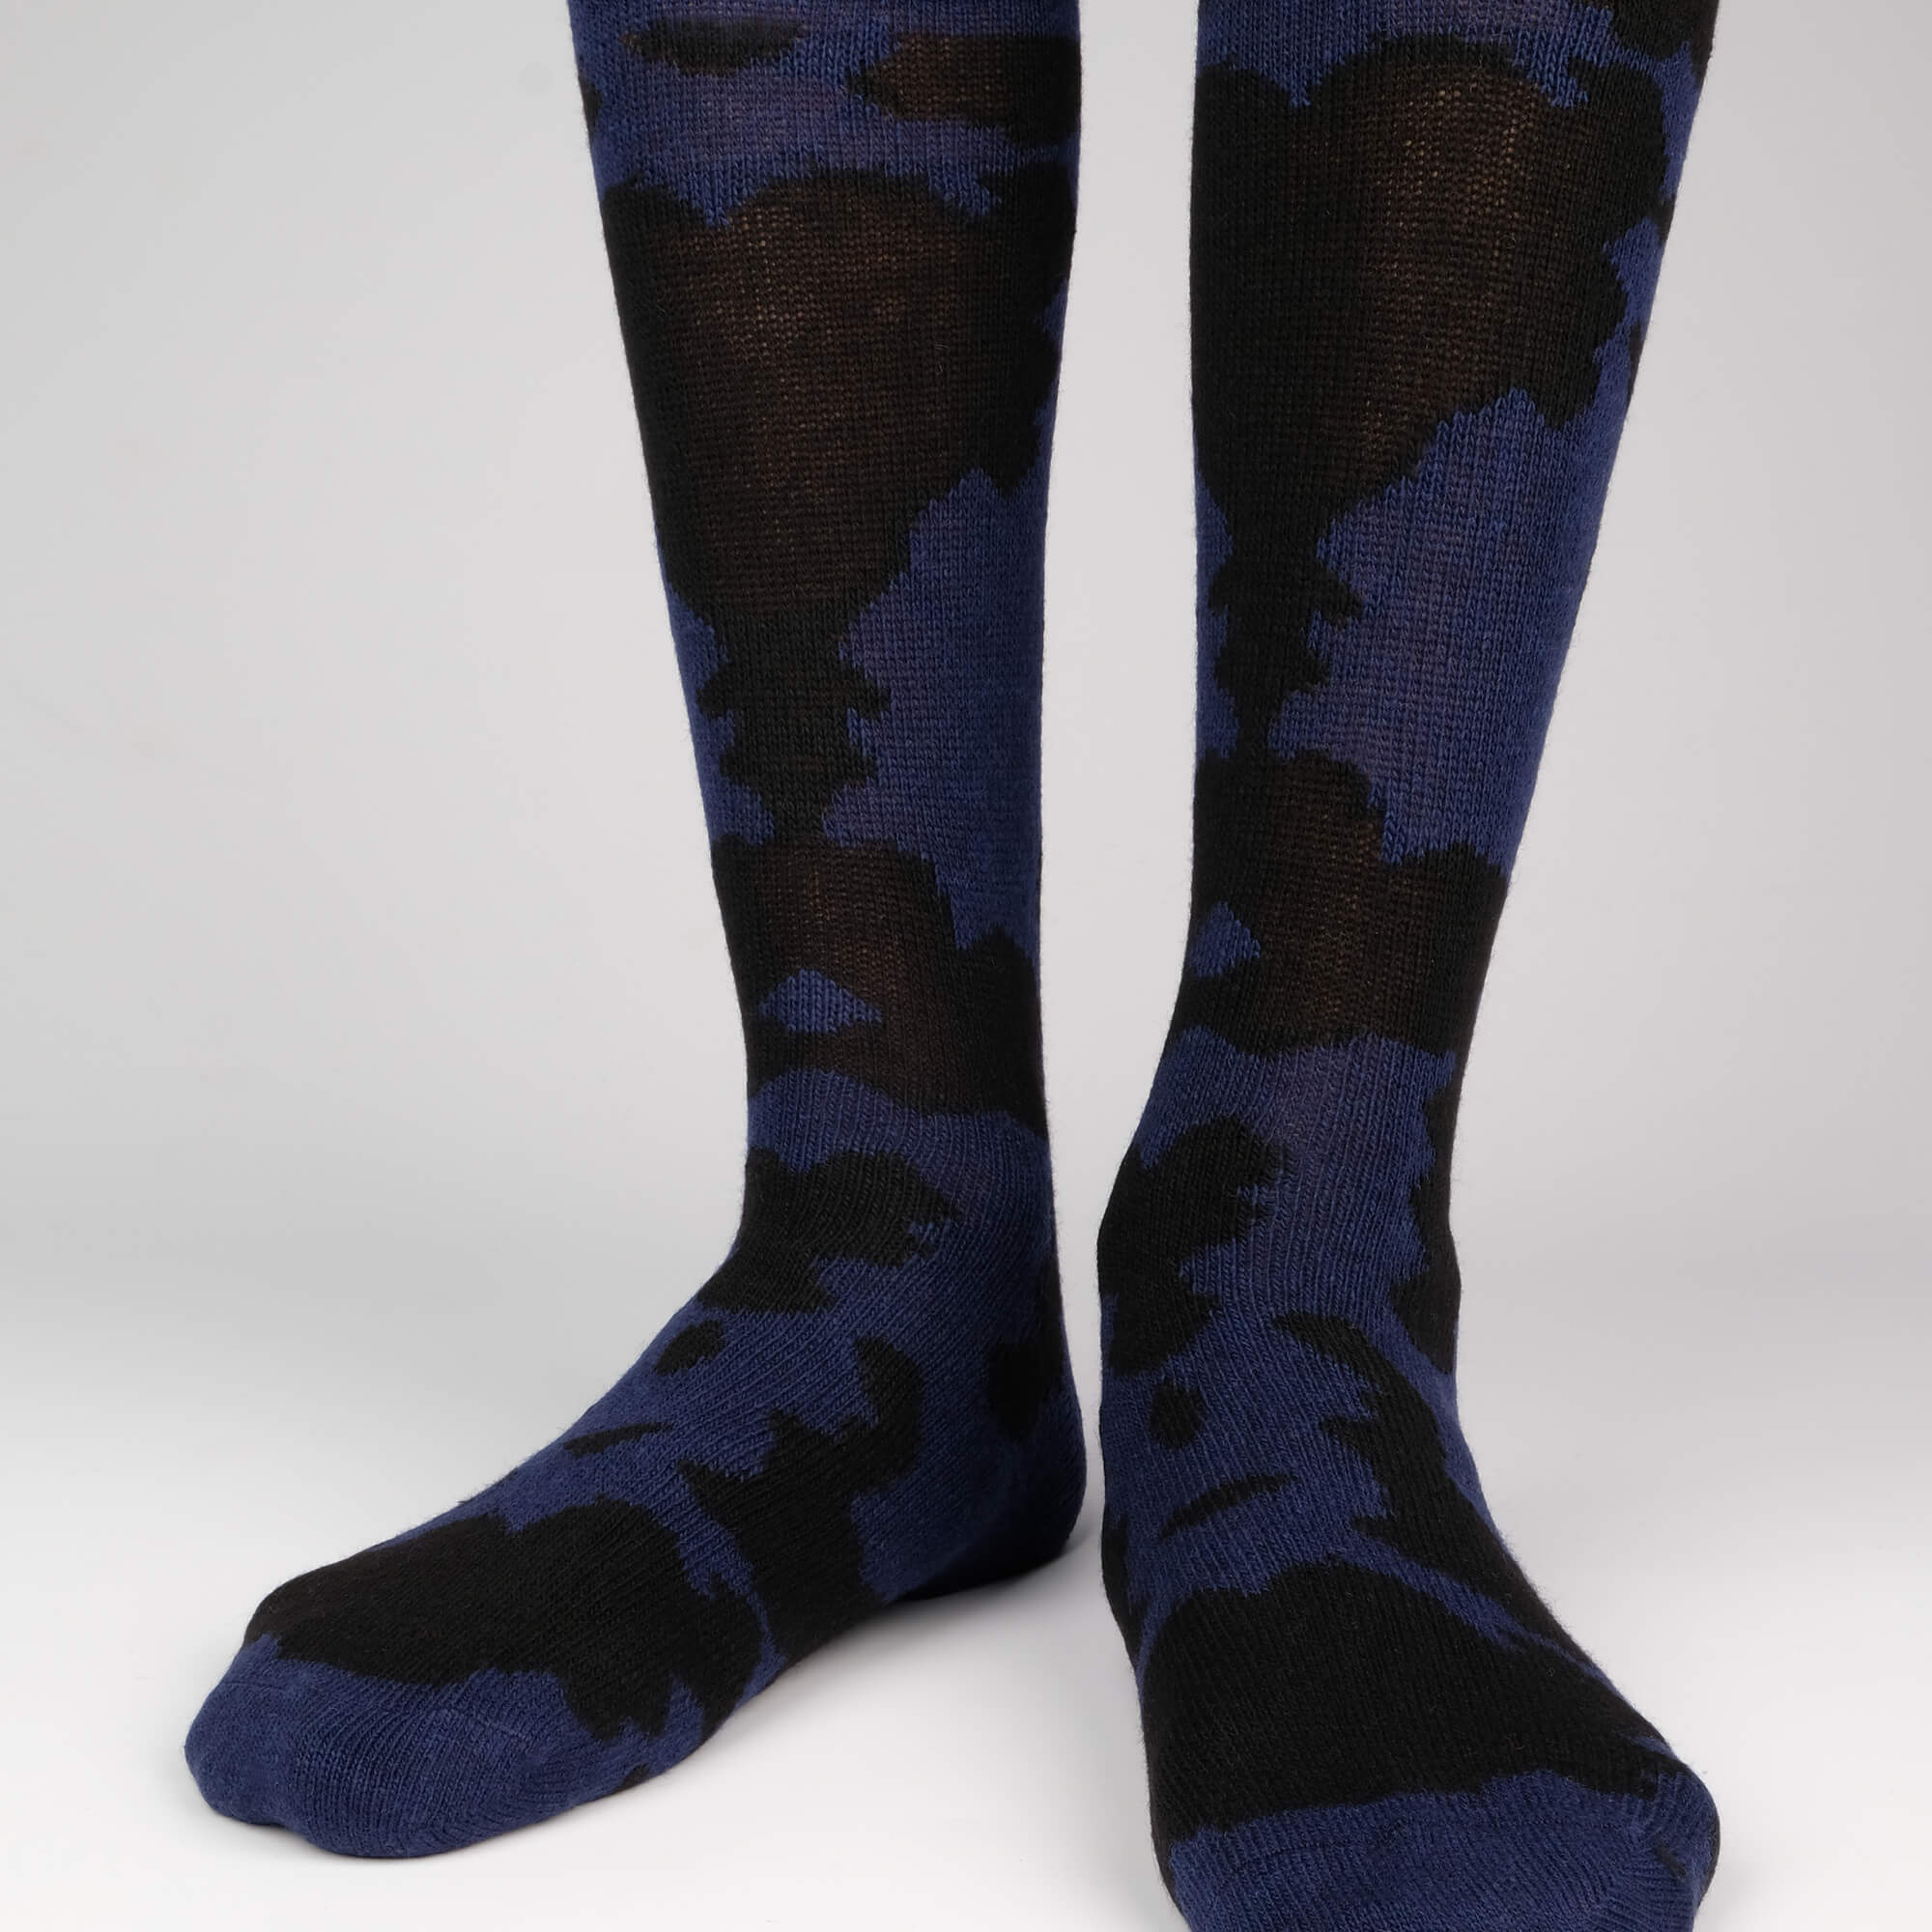 Cashmere Camo - Blue - Mens Socks | Etiquette Clothiers Global Official